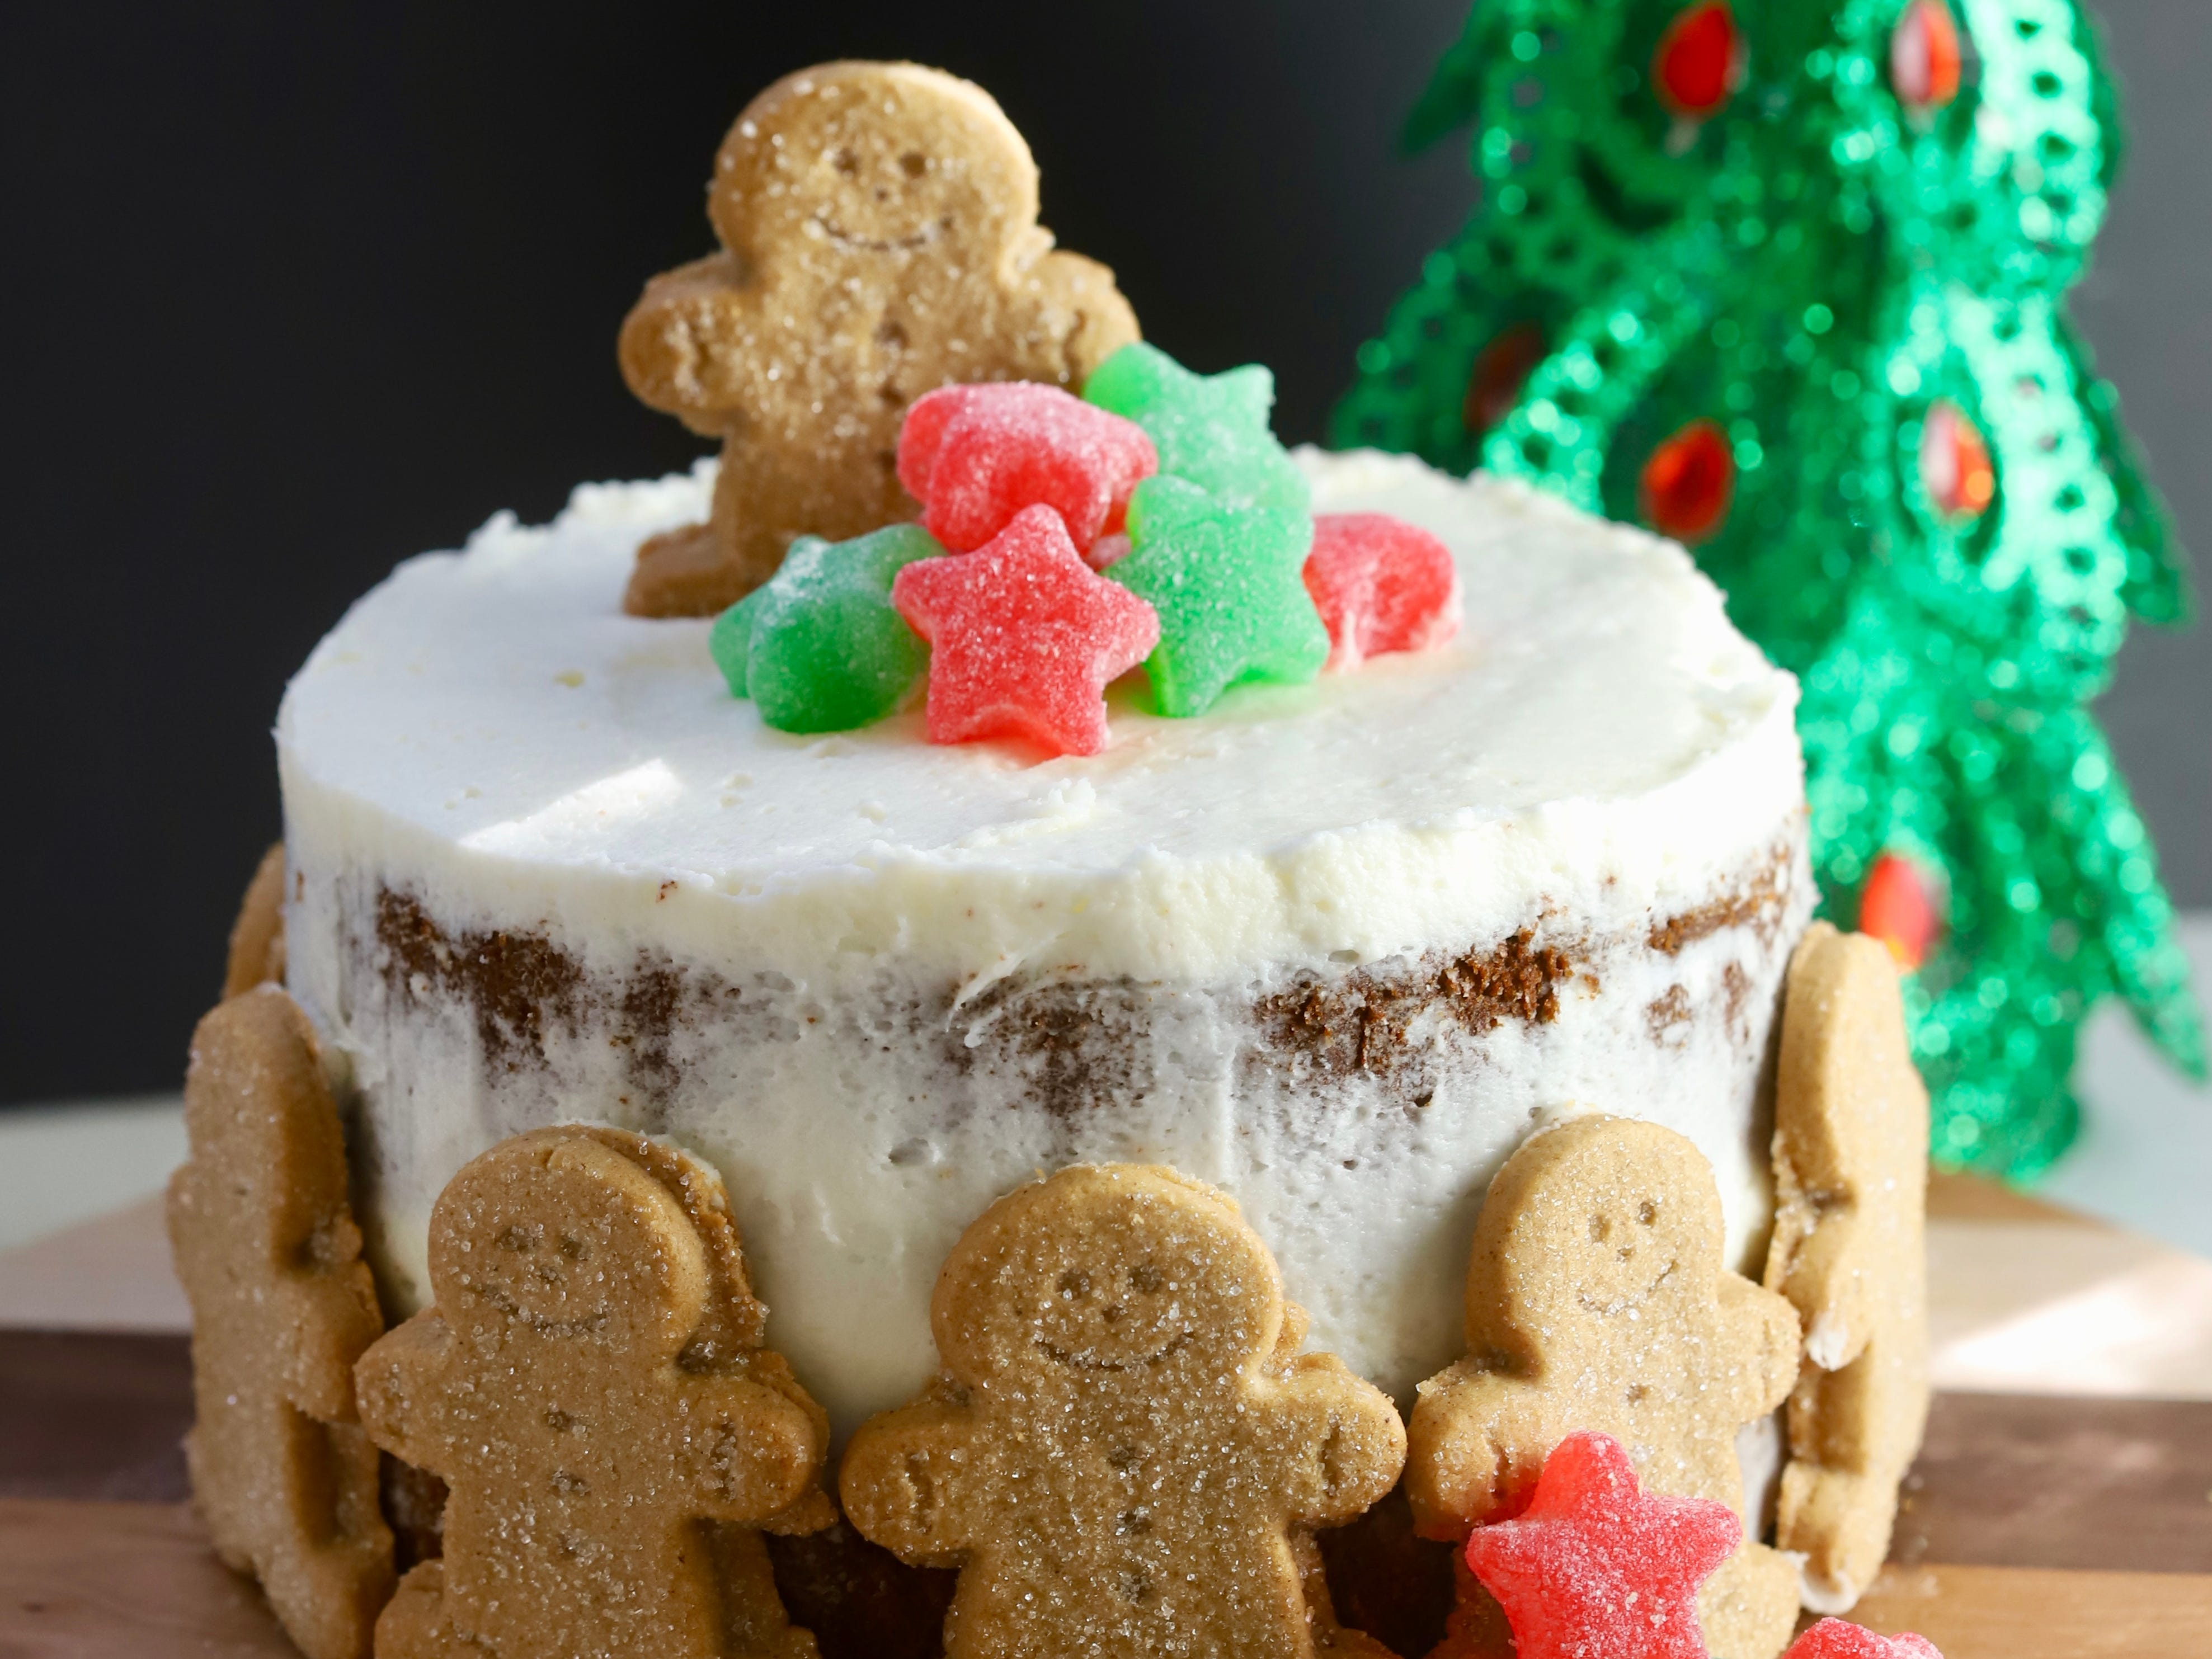 Spice up your Christmas with Gingerbread Cake